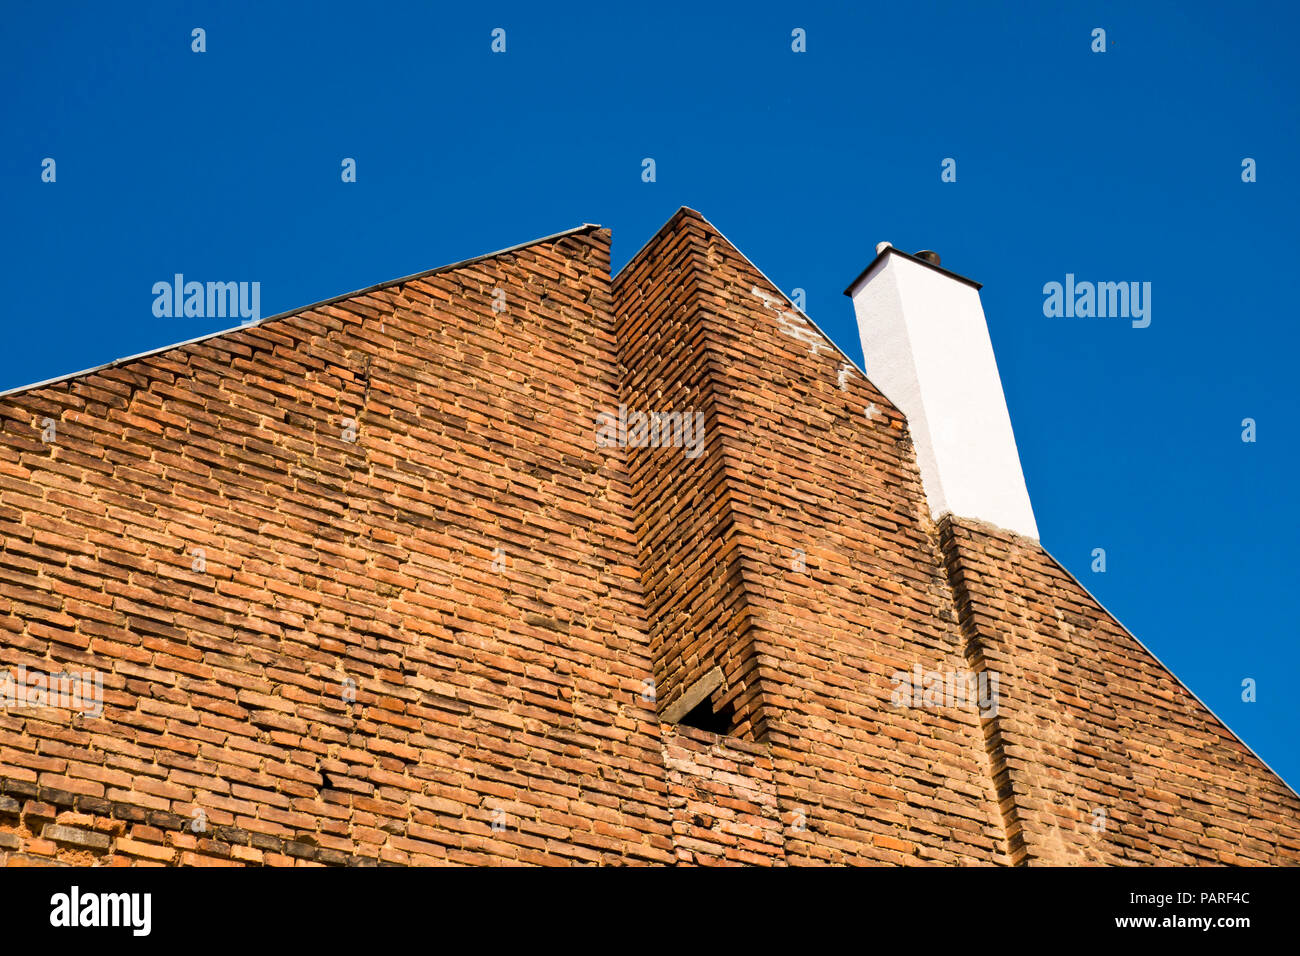 graphical angled view of a red bricks house with white chimney and blue sky - Stock Image